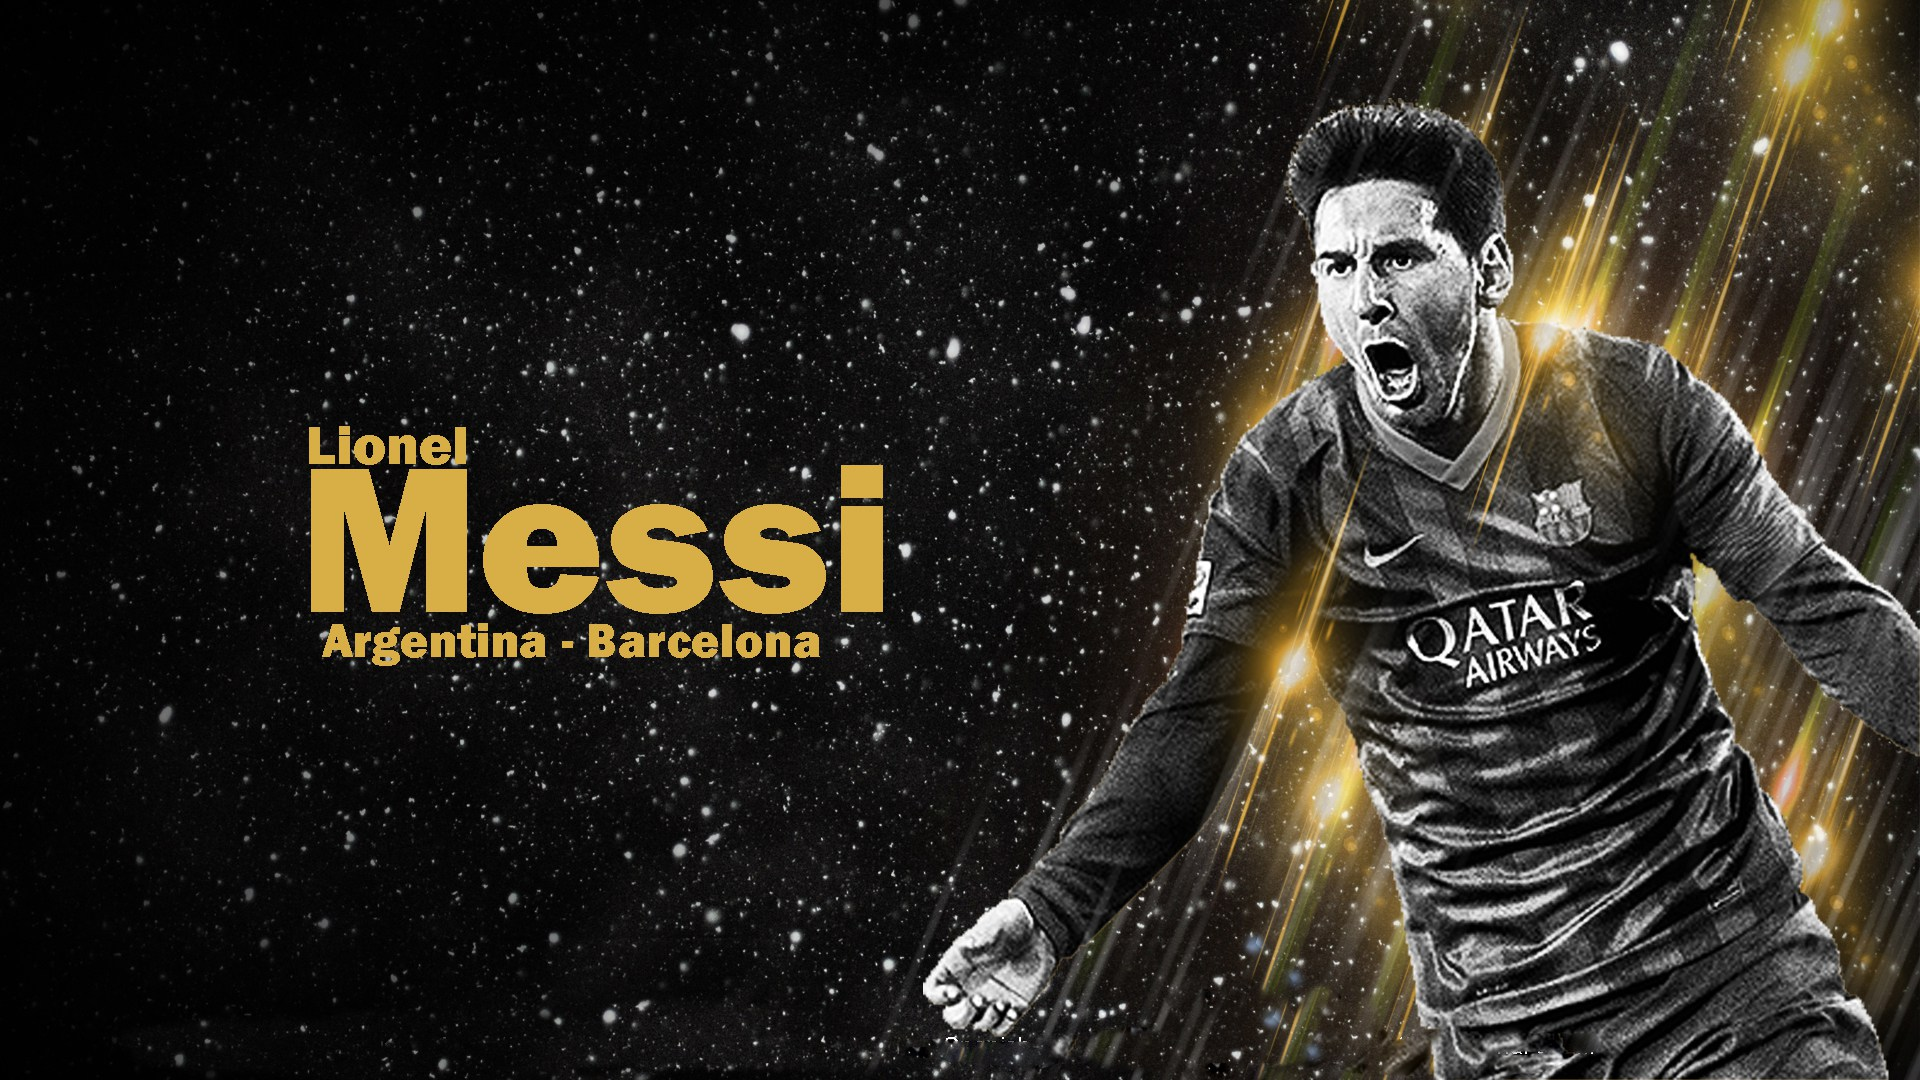 Dark Background Lionel Messi wallpaper